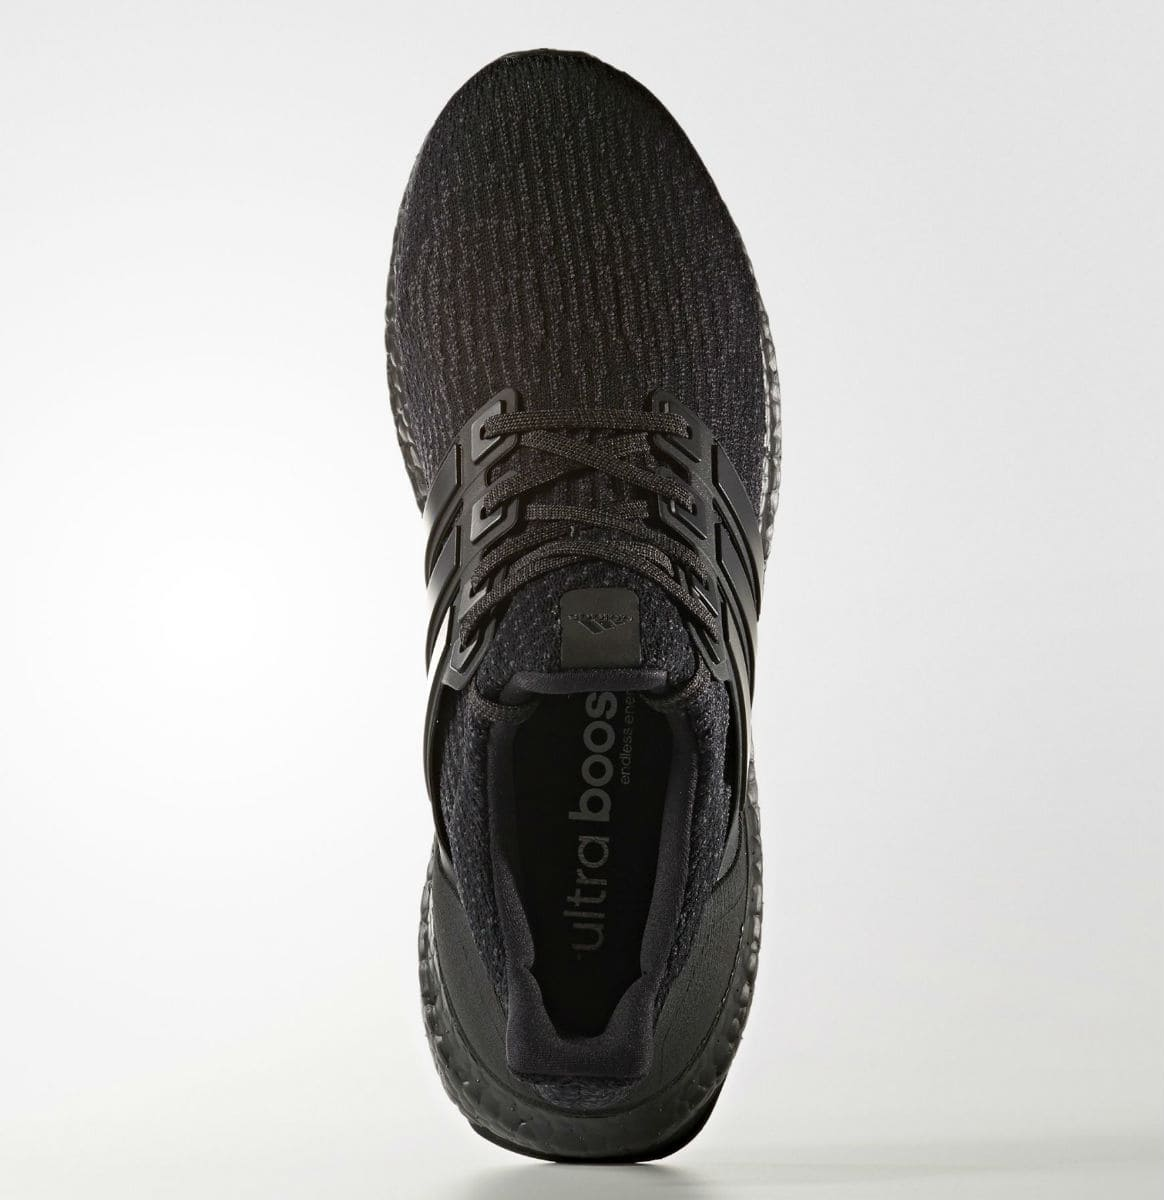 95e5cd0a6a920 ireland adidas ultra boost 3.0 triple black 1f311 60715